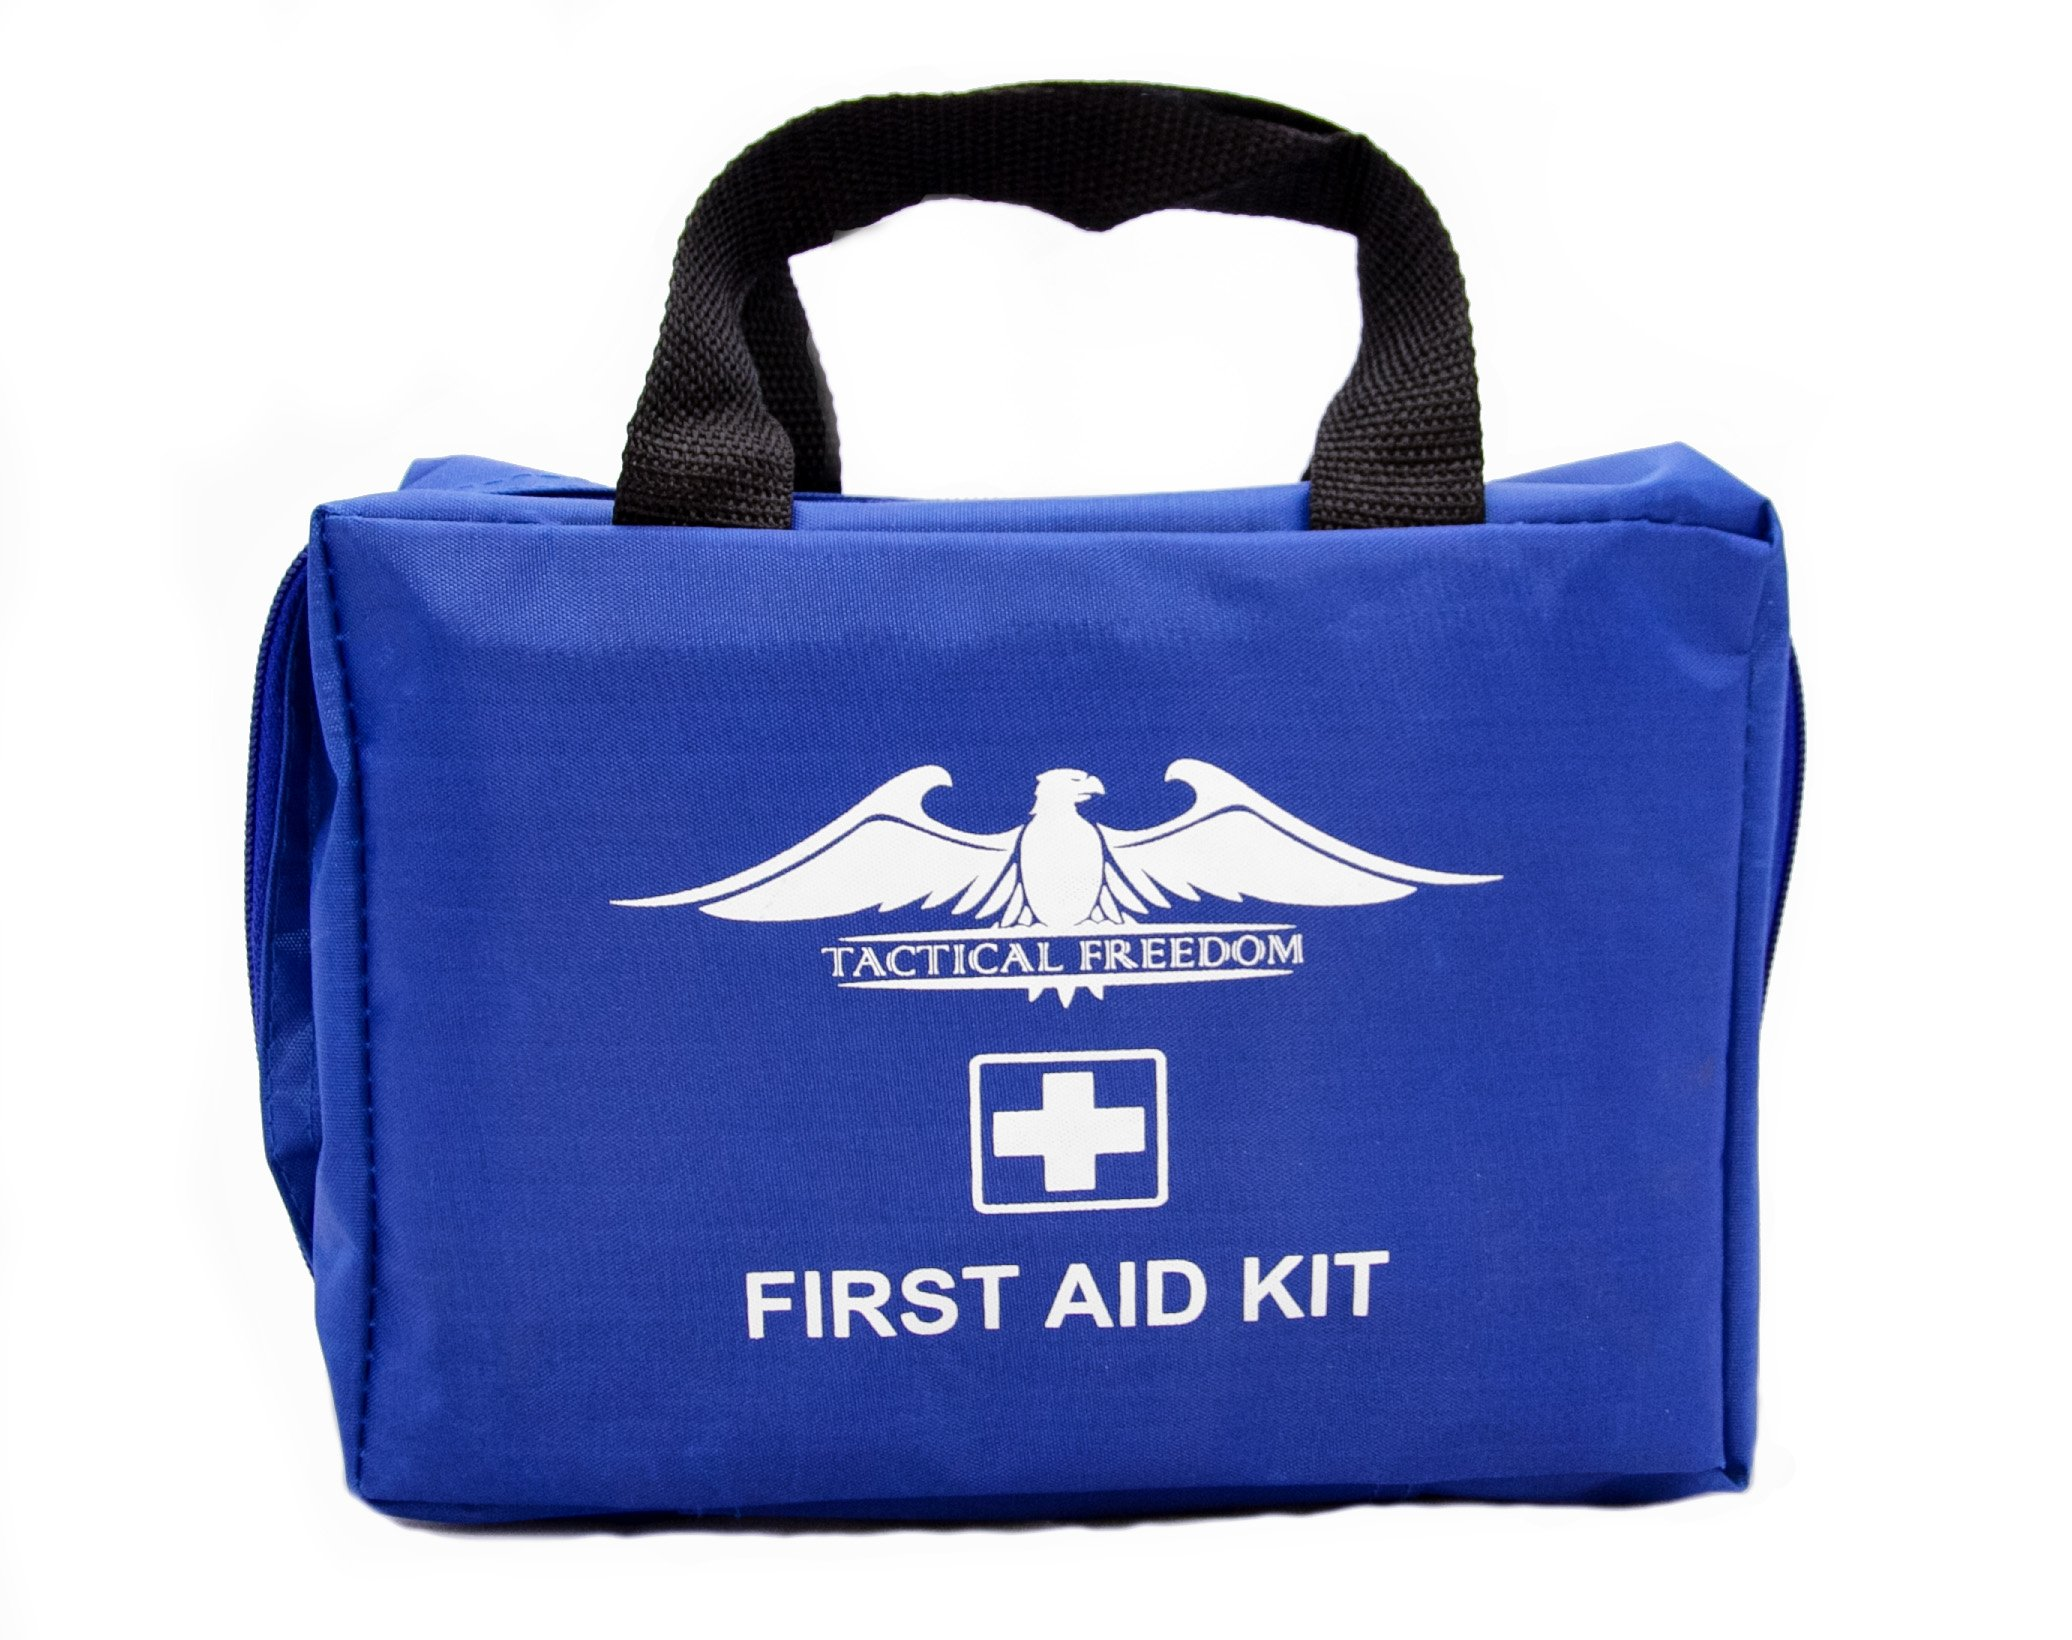 First Aid Emergency Survival Kit – Is All You Ever Need for Backpacking, Camping, Car, Hiking, Home, and Travel. First Aid Kit Contains Belt Tourniquet, Trauma Pads, Cold Pack, Bandages, and much more